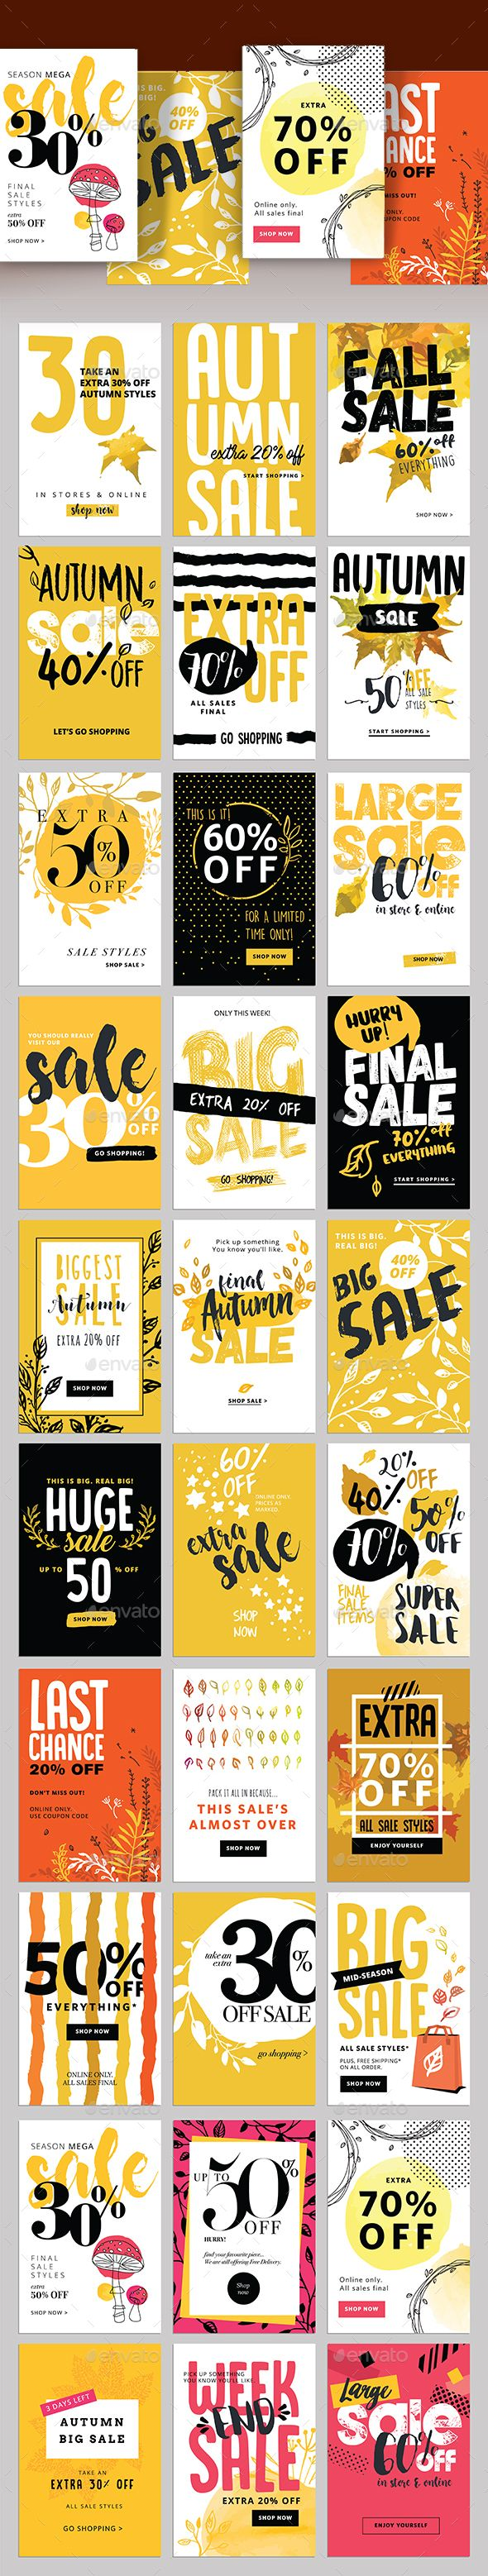 Autumn Social Media Sale Banners Template PSD, Vector EPS, AI Illustrator More